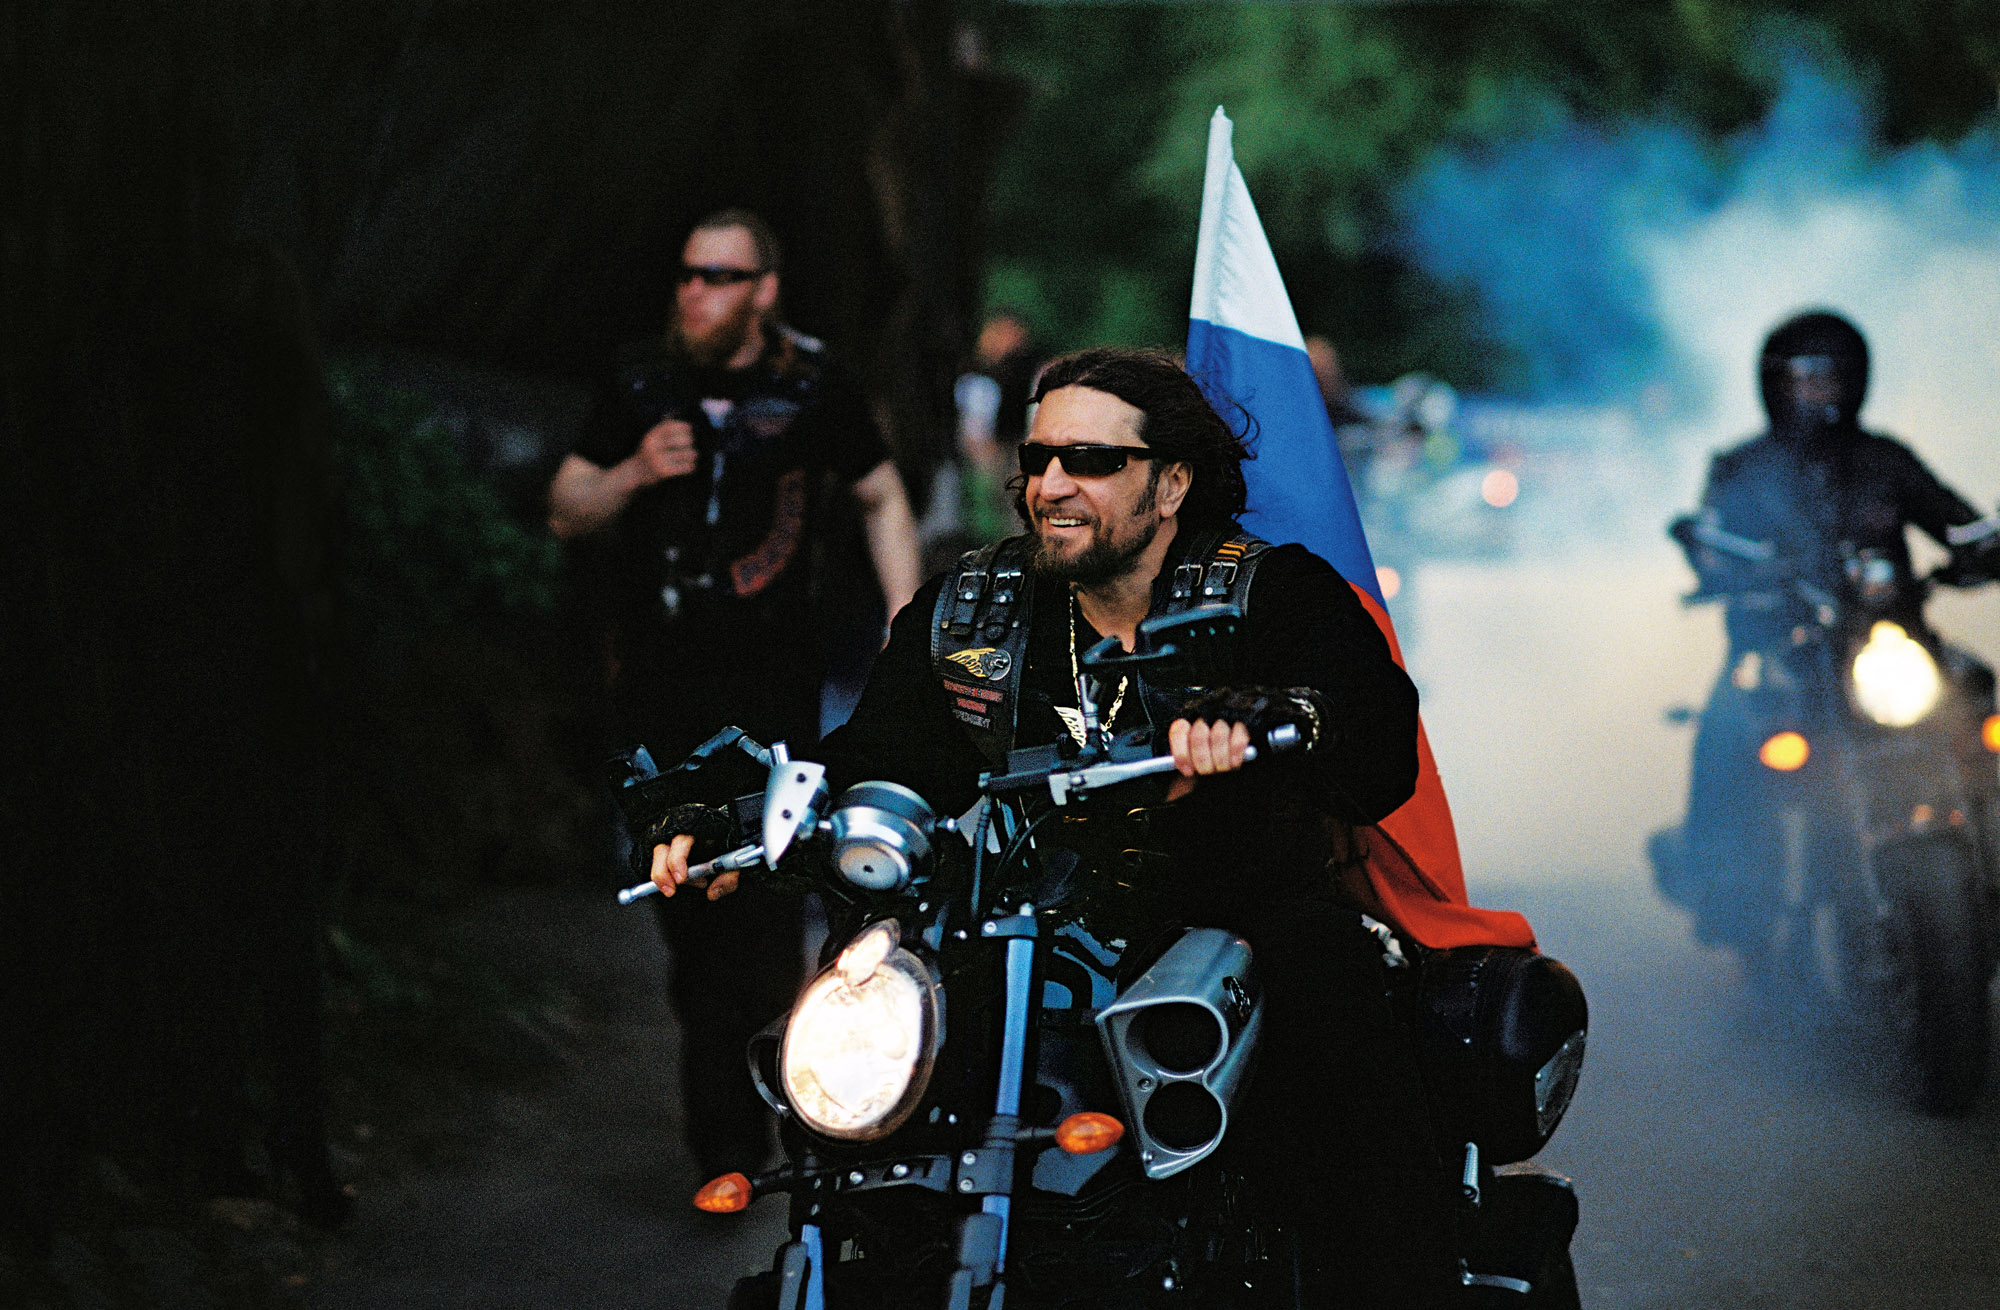 888df18ca92d0 Putin s Angels  Inside Russia s Most Infamous Motorcycle Club ...